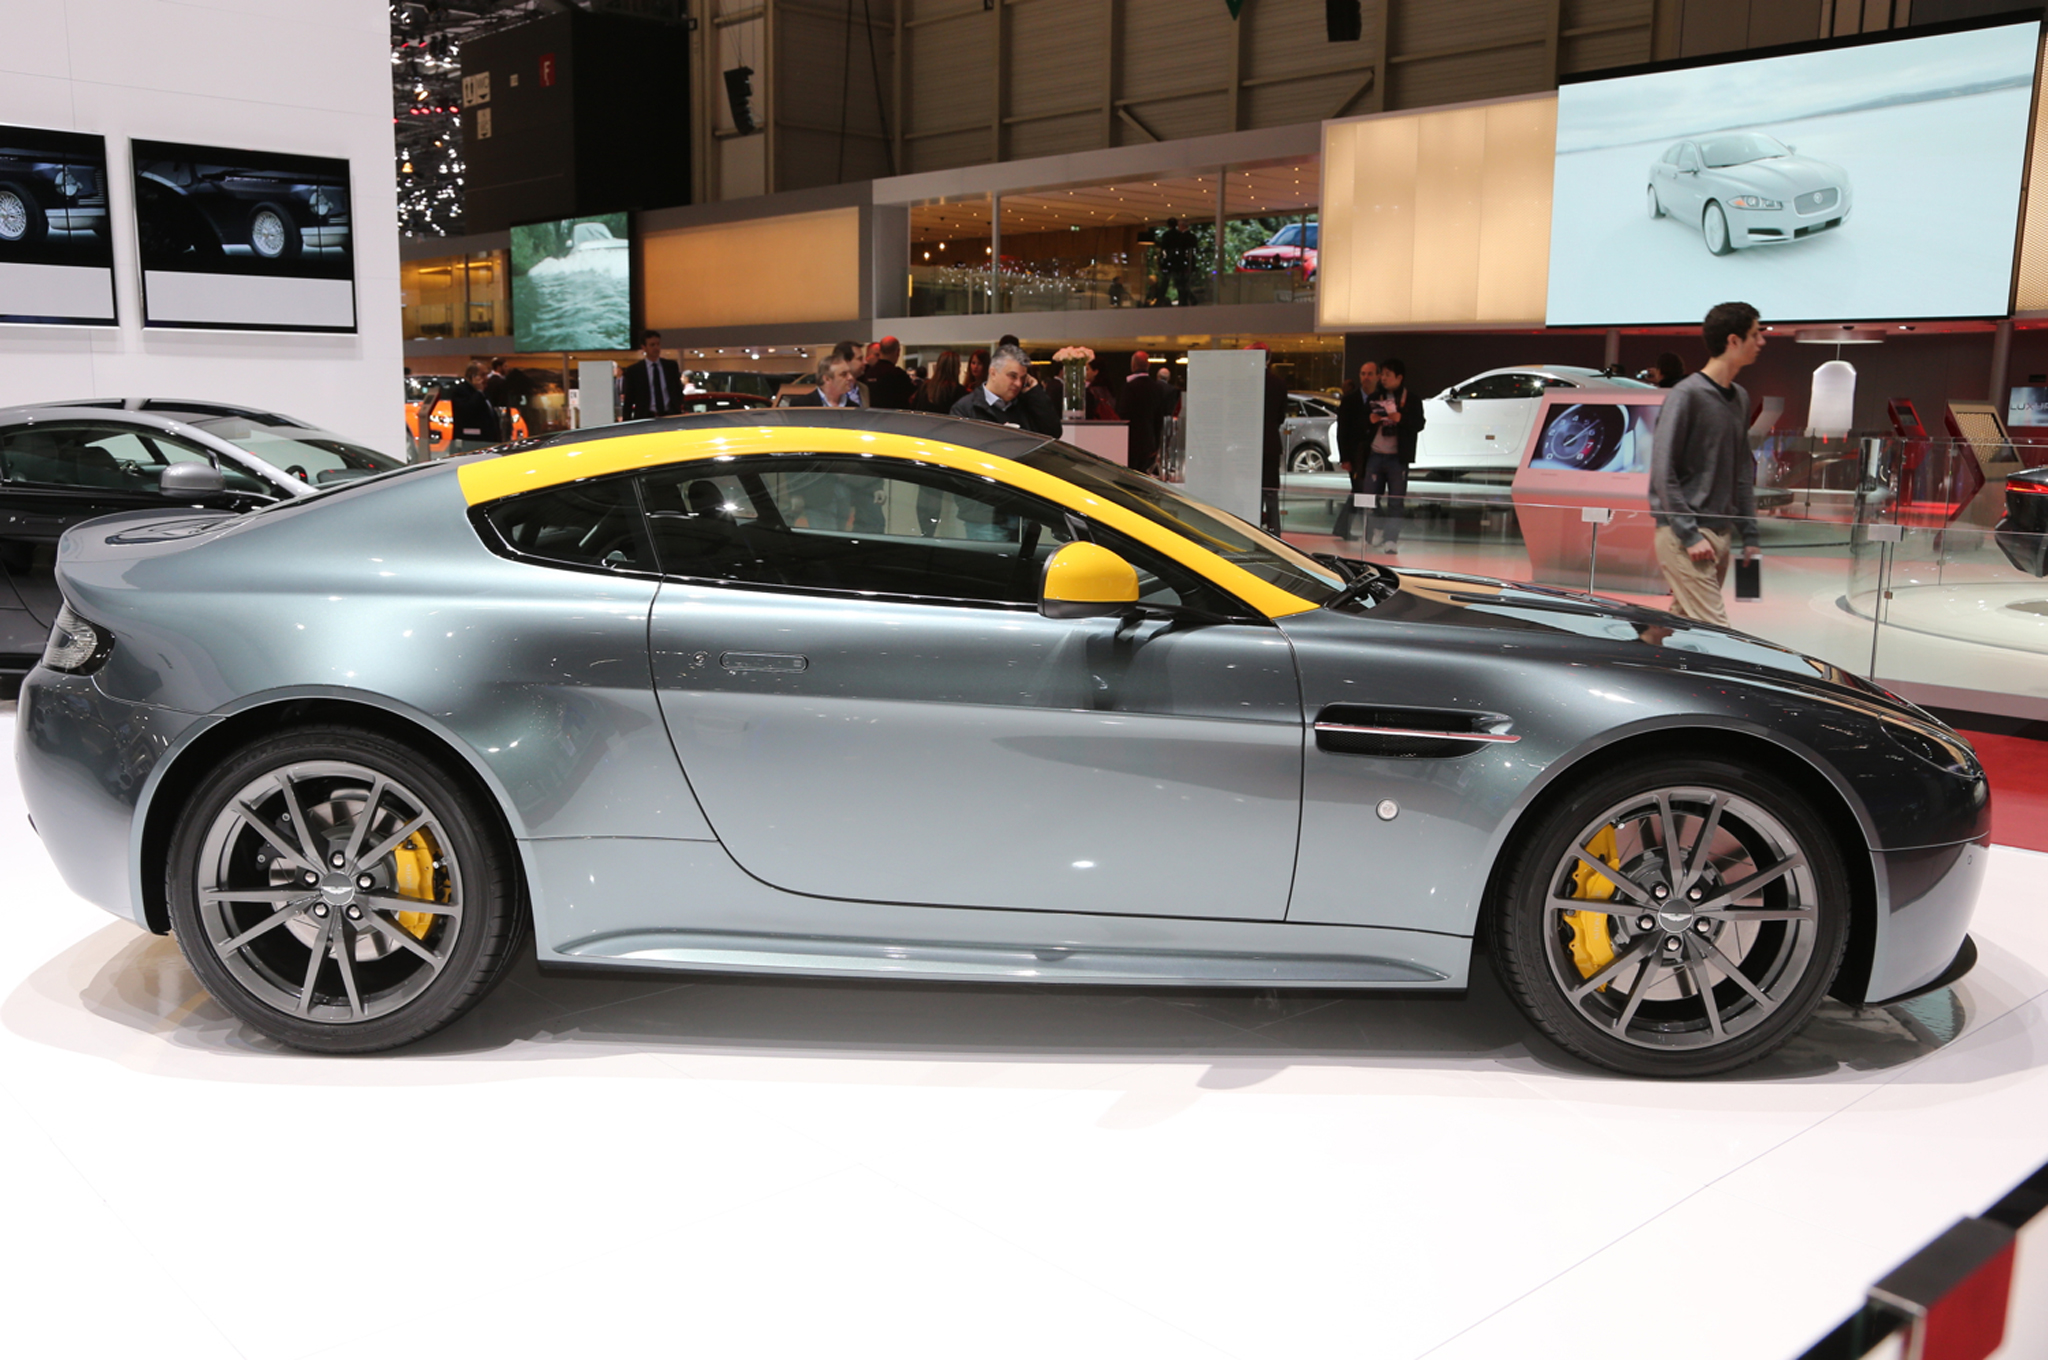 2015 Aston Martin V8 Vantage Gt Side View (Photo 6 of 7)